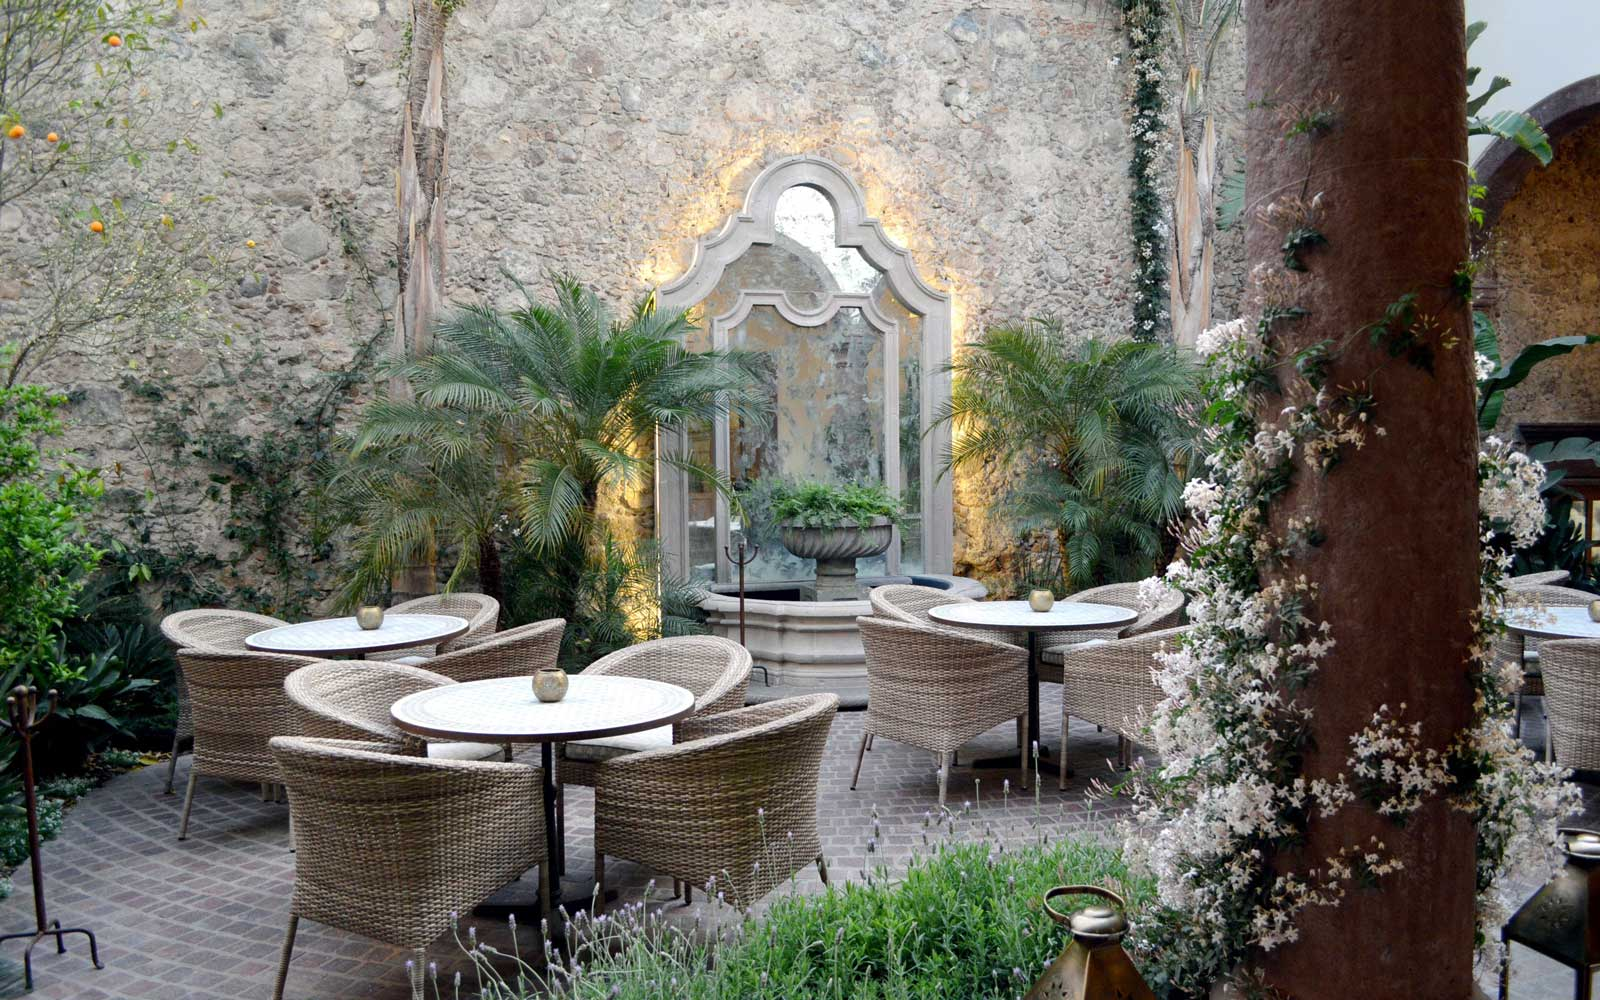 Enjoy 30% off Stays at a Charming Boutique Hotel in San Miguel de Allende